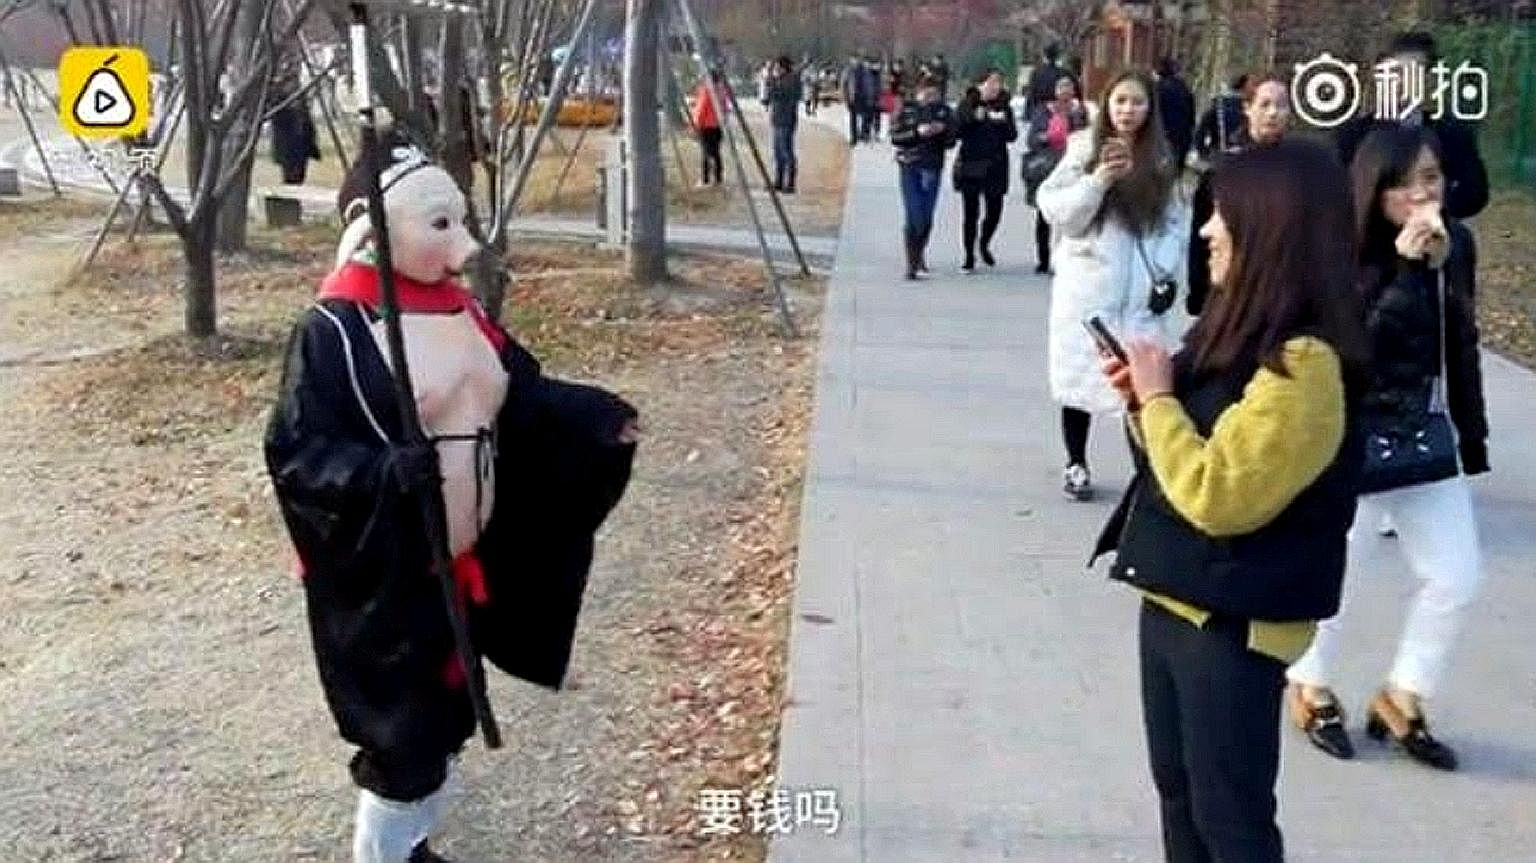 Ms Wu Xiue dresses as fictional character Pigsy from the classic tale Journey To The West to raise money for her mentally ill husband and son. Ariel Olivar's six-second video (left), posted on Dec 2, shows her stepping on an imaginary box on one leg